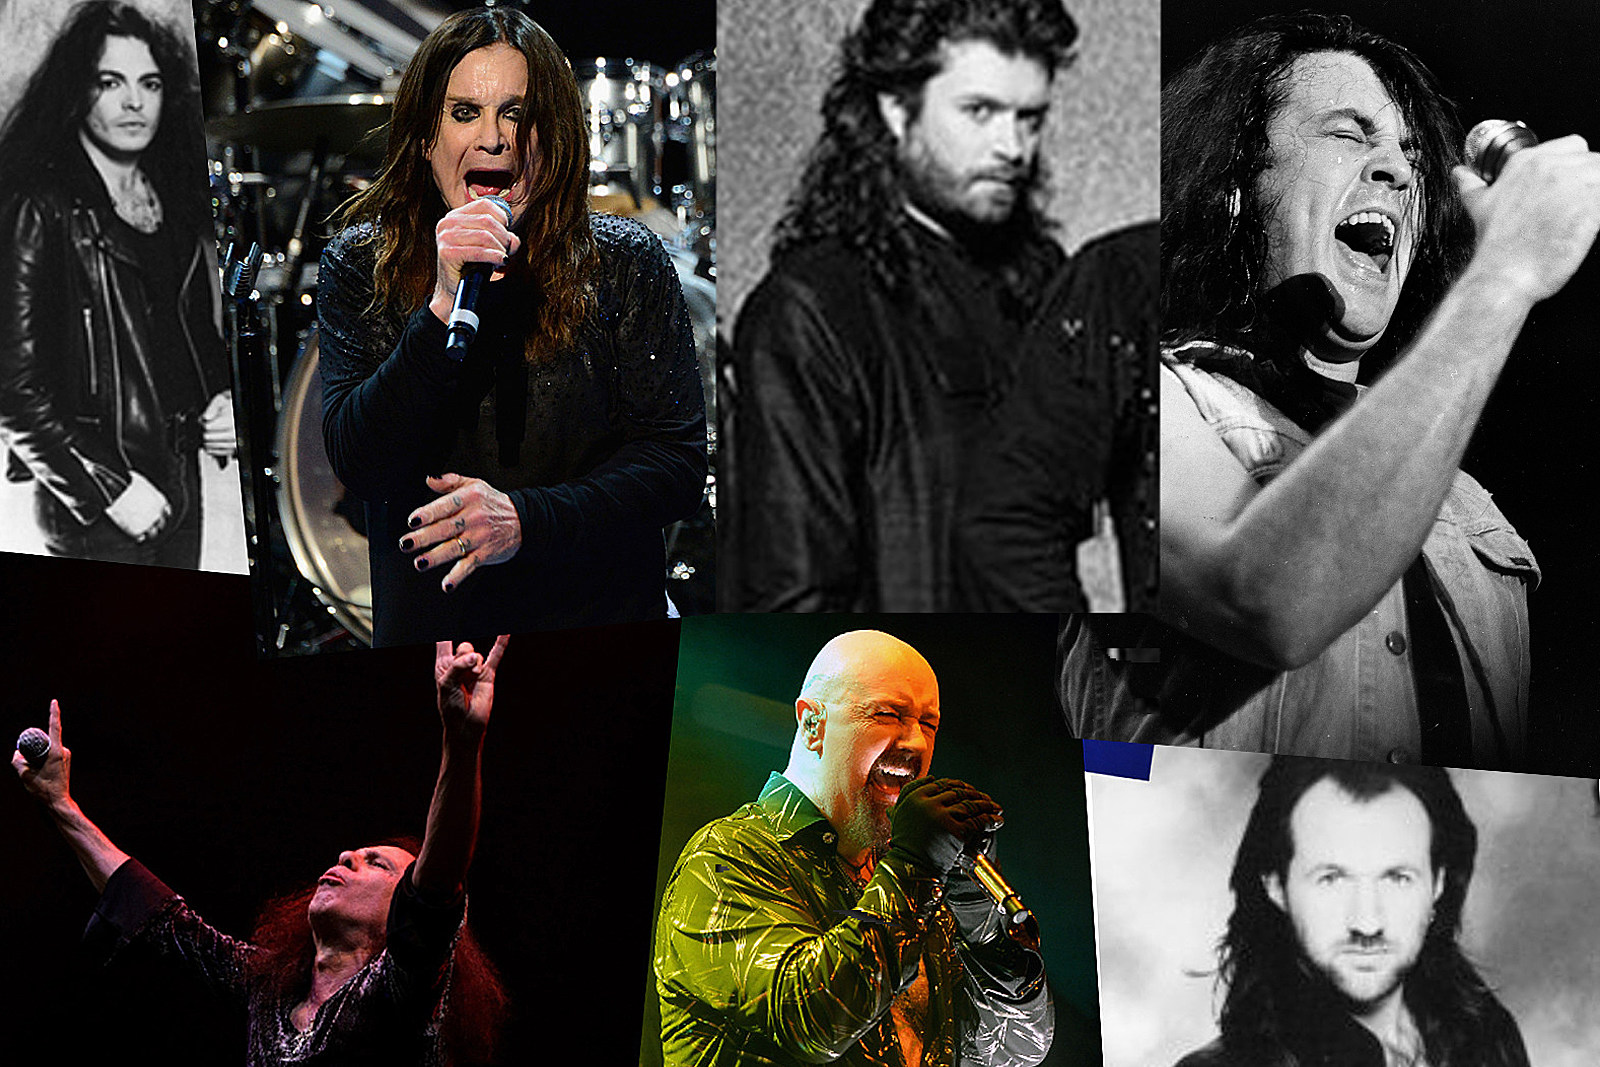 Which Black Sabbath Singer Has Performed the Most Shows?